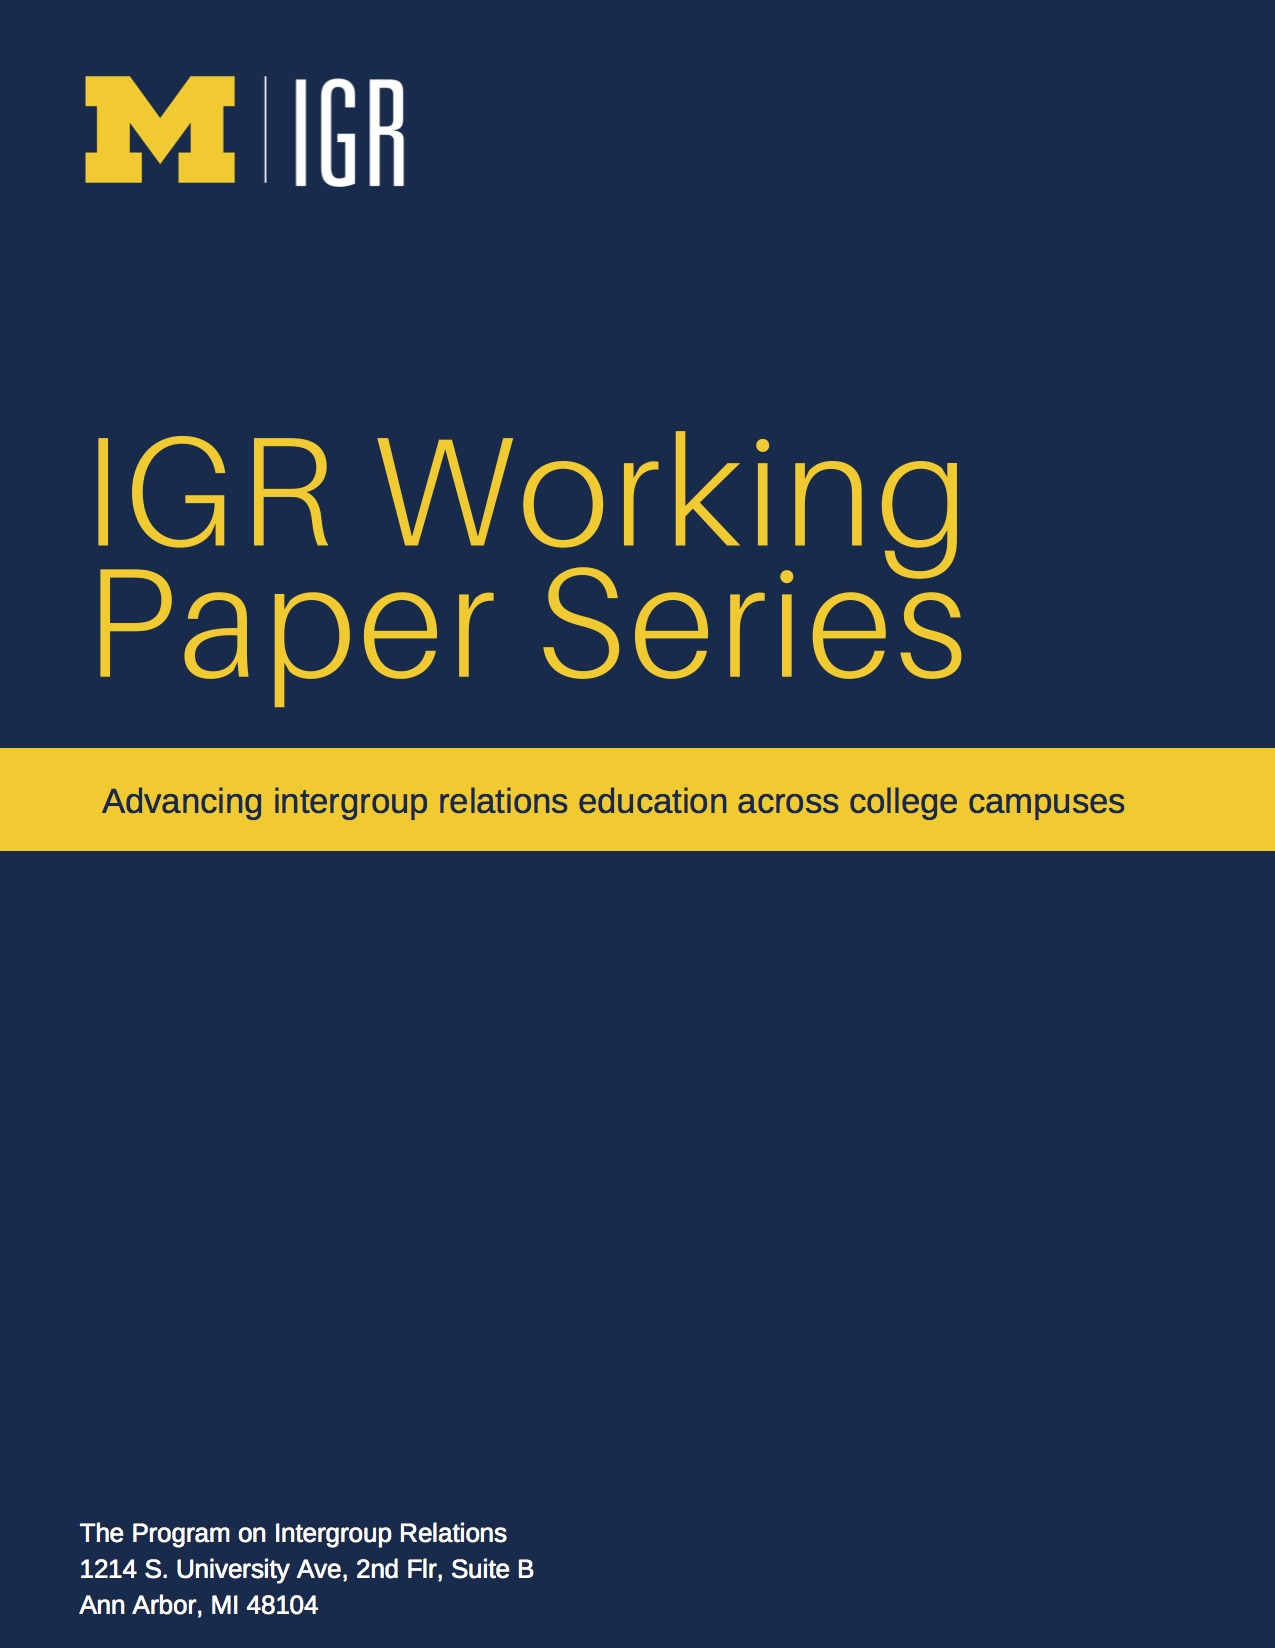 Working Paper Series | Intergroup Relations